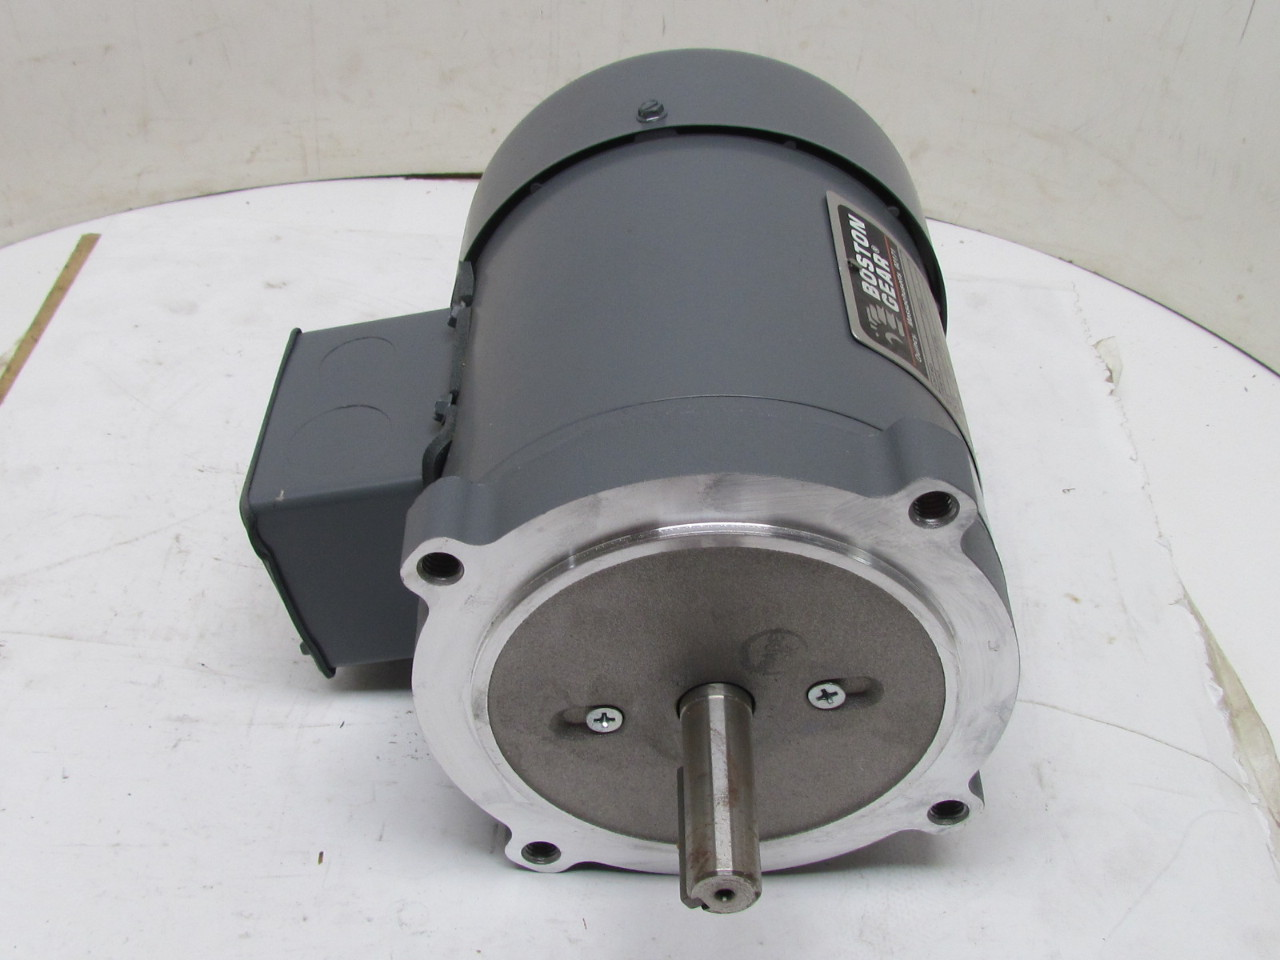 Boston Gear Dutf 63949 Electric Motor 1 4hp 1725rpm 3ph